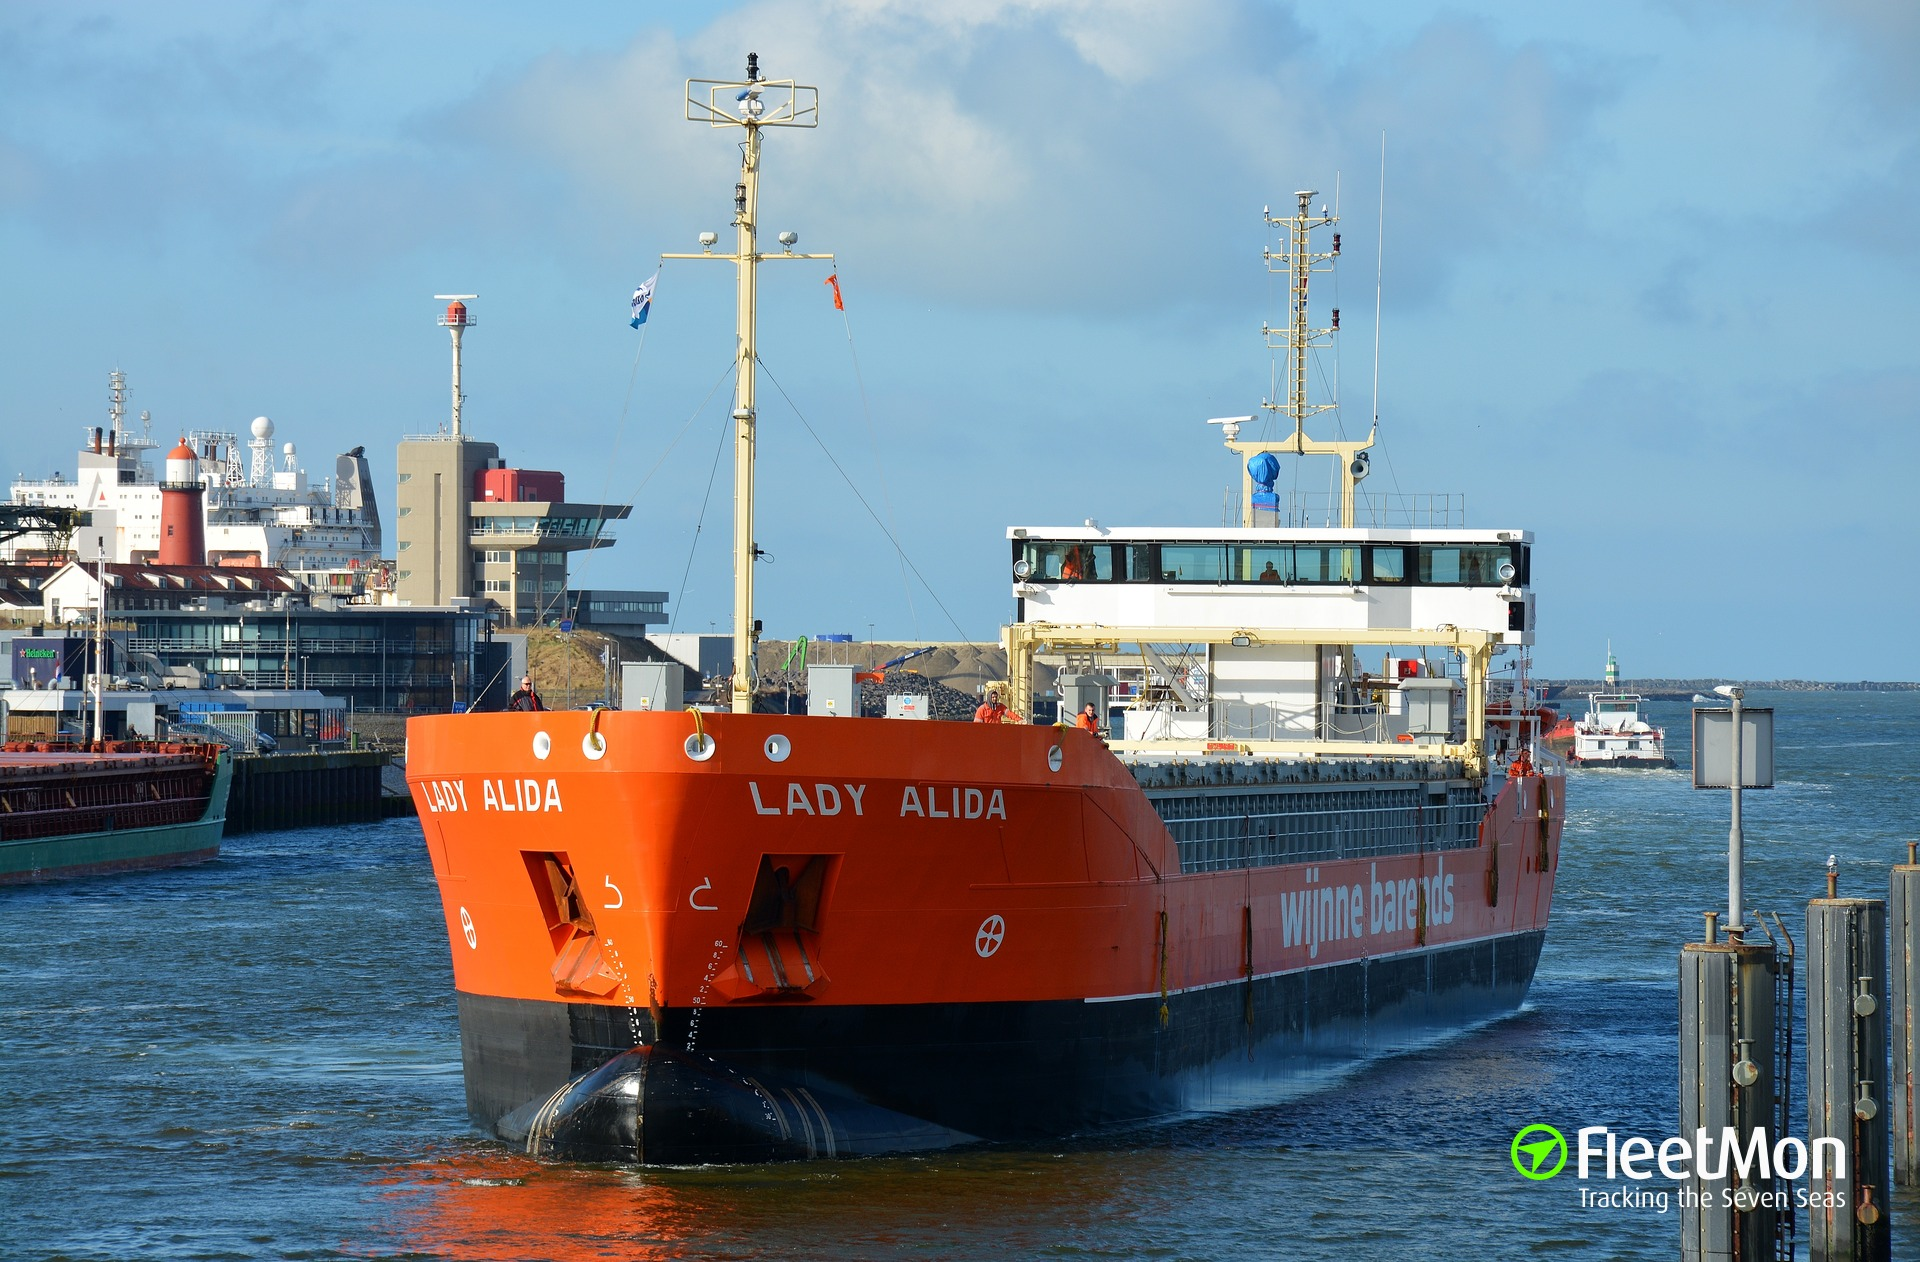 LADY ALIDA troubled west of Lizard